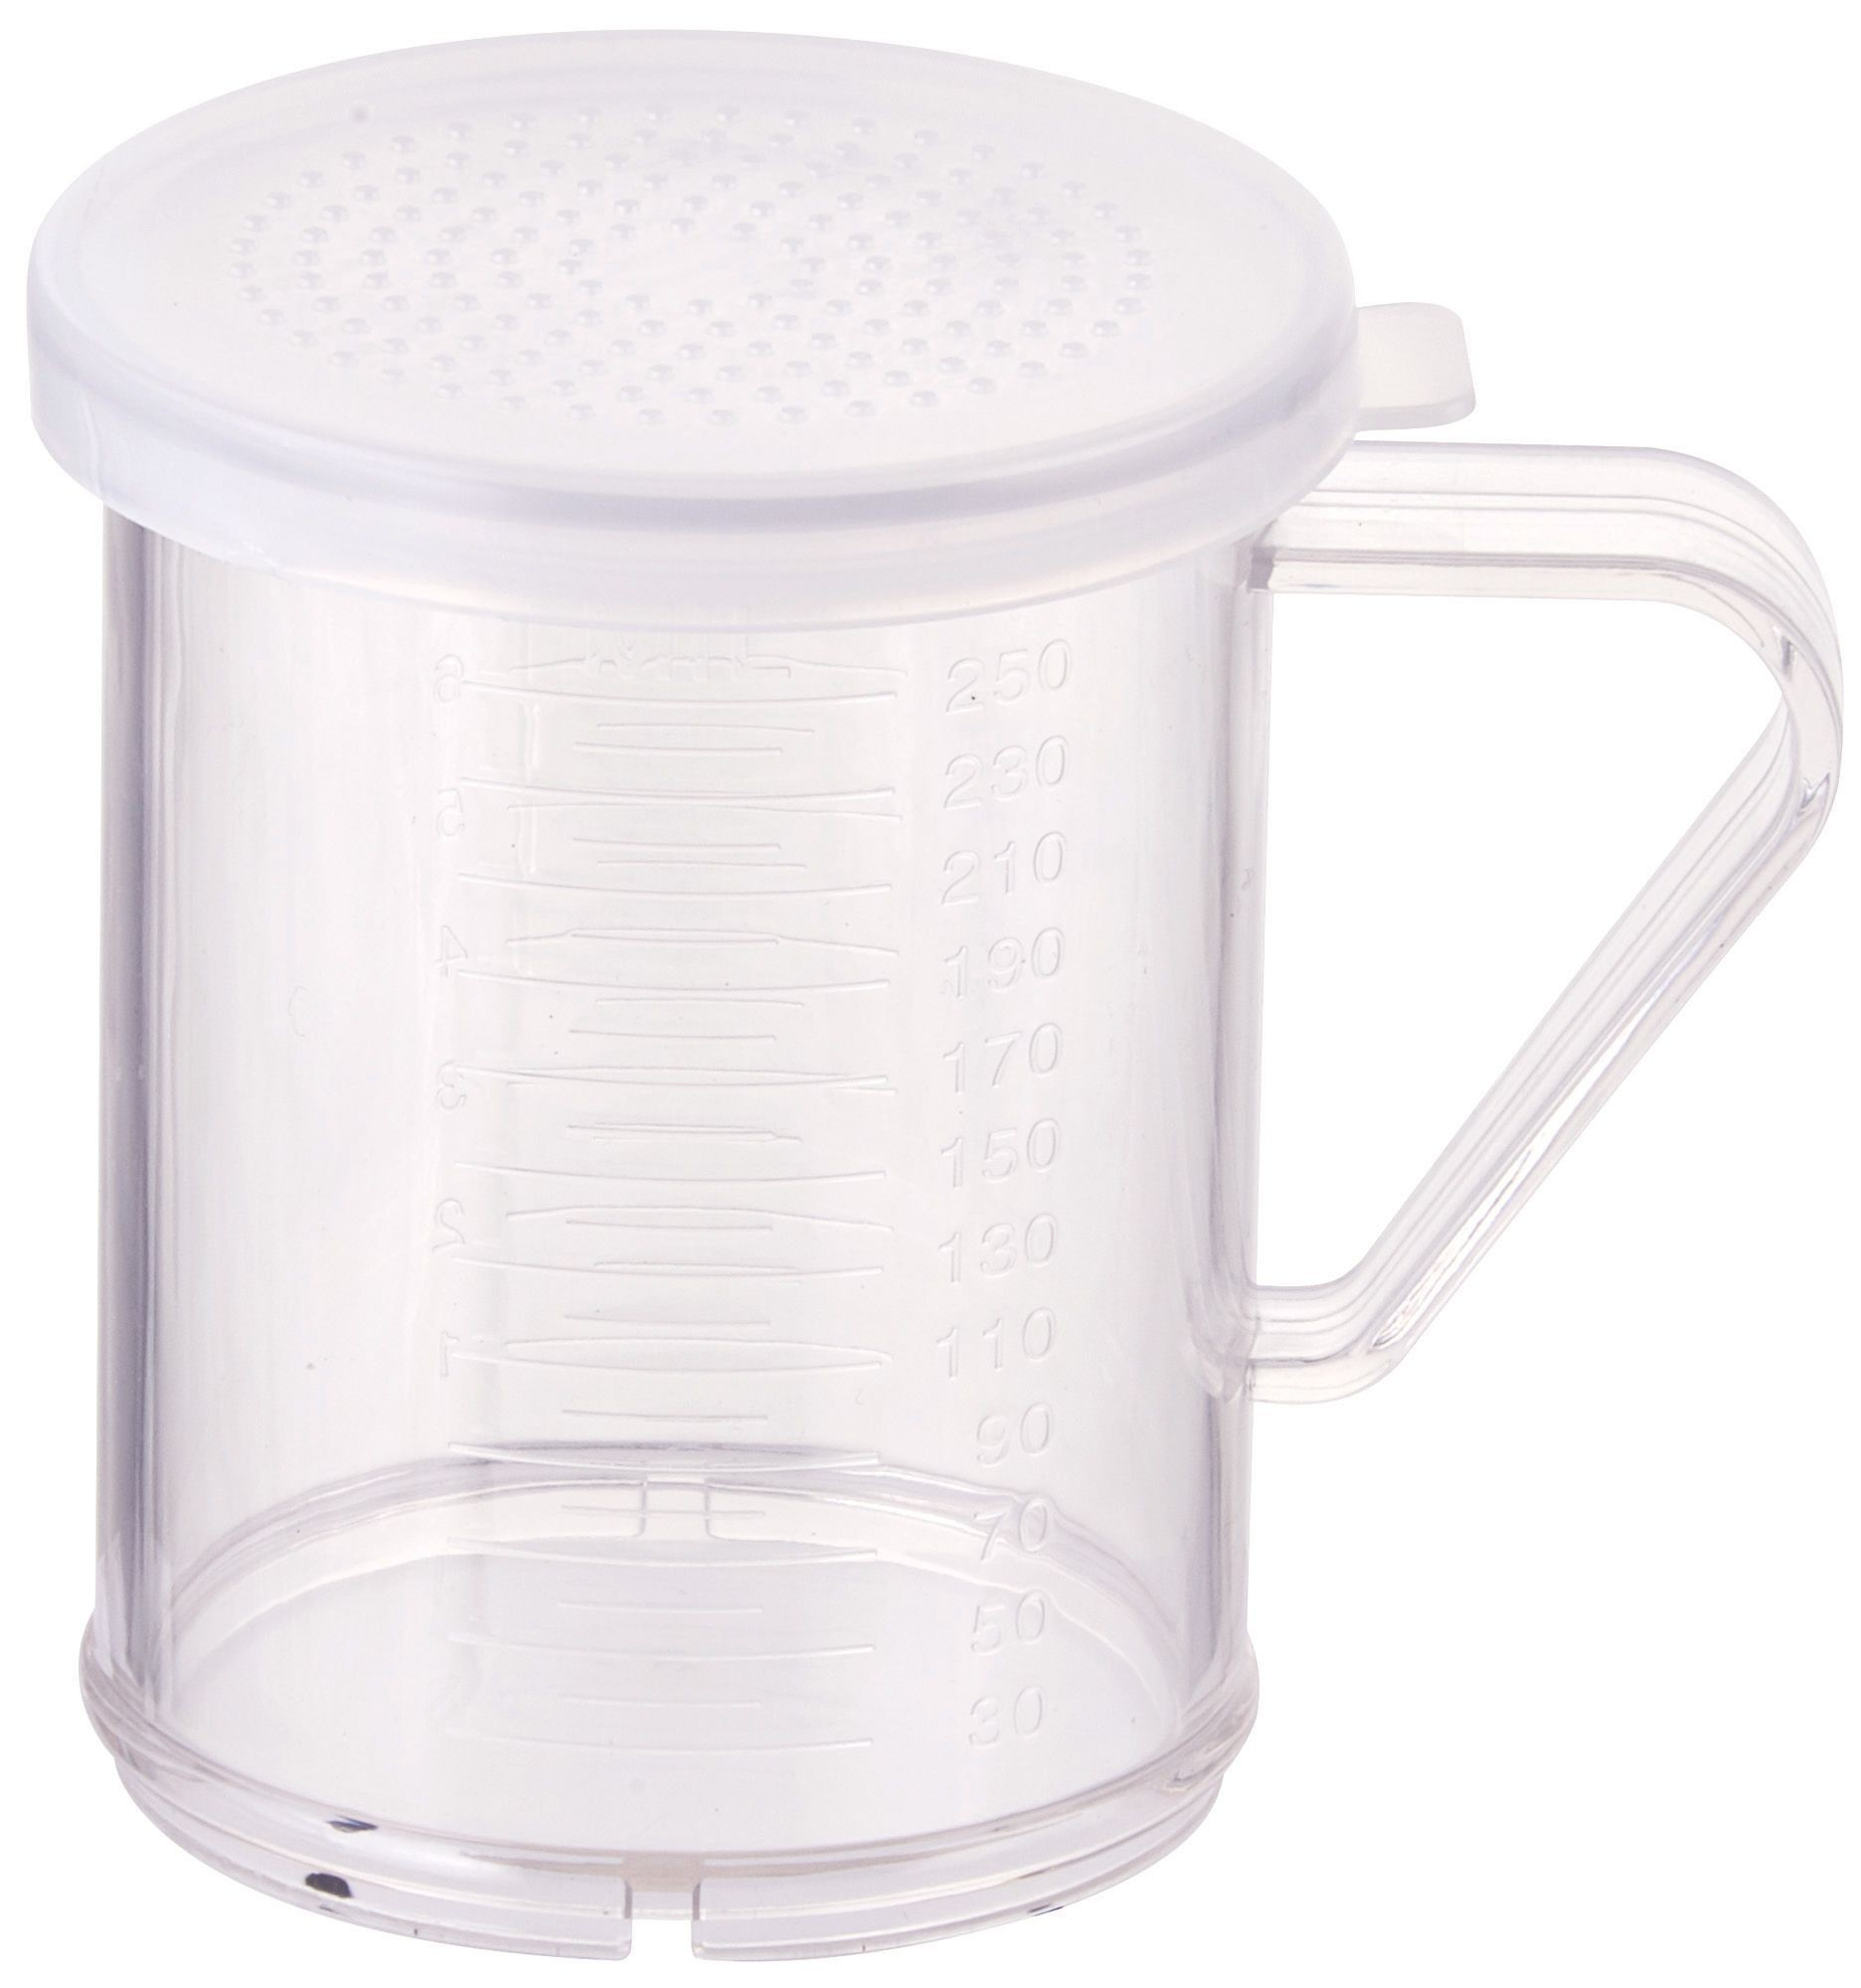 Winco PDG-10 Polycarbonate Shaker/Dredge with Three Snap-On Lids 10 oz.